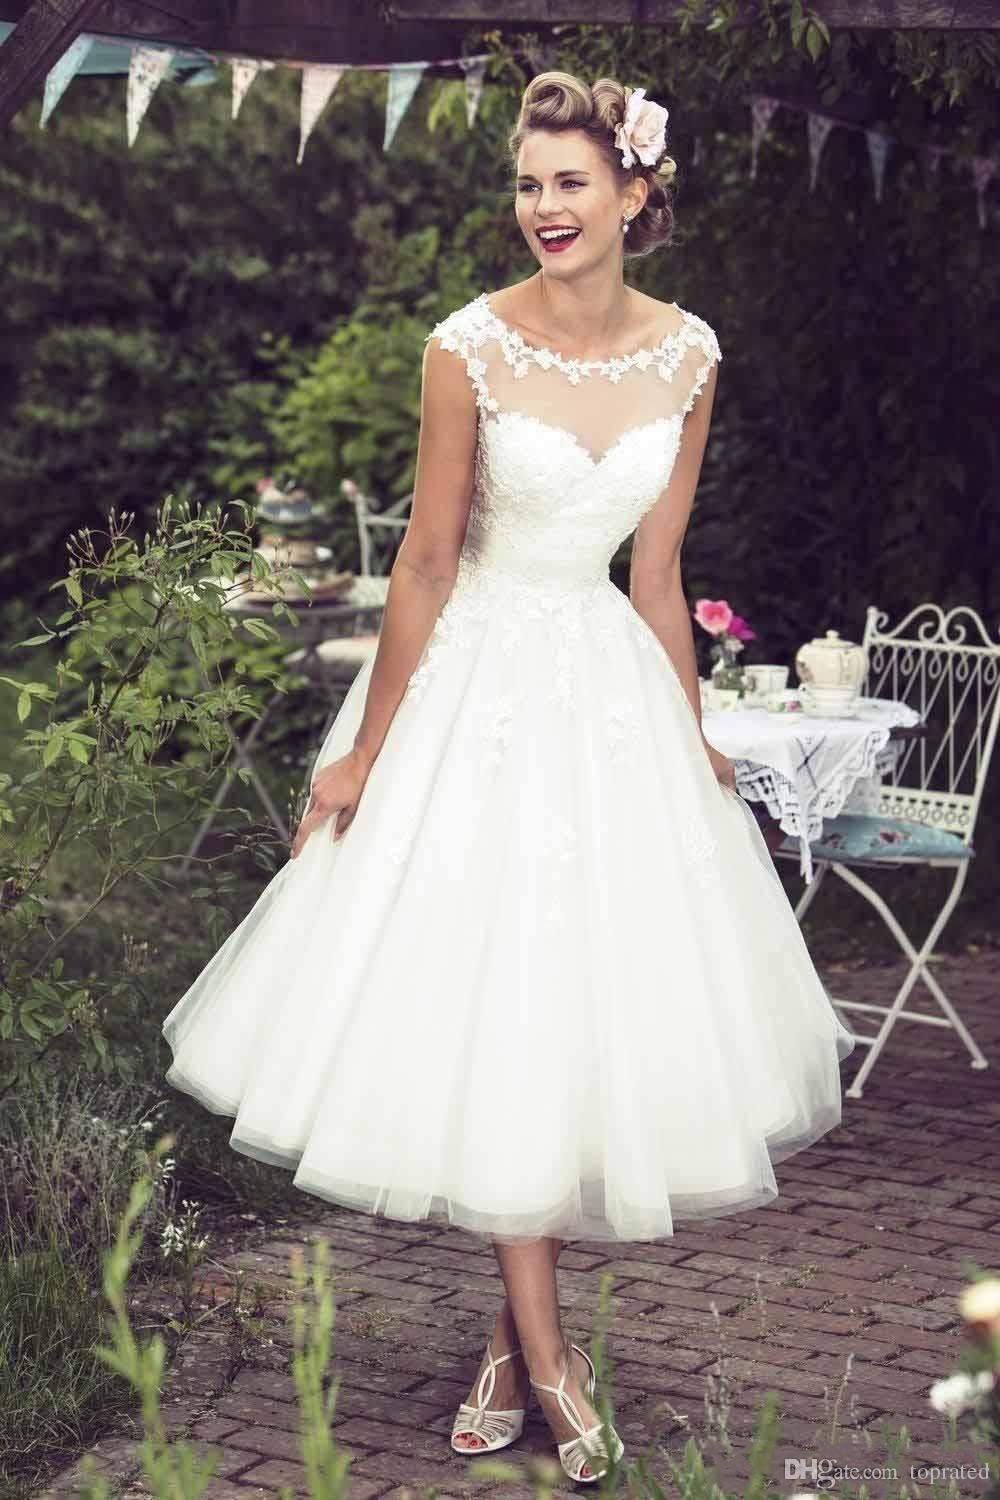 2018 Elegant Short Beach Wedding Dresses Sheer Neck Appliques Lace Tea Length Modest Bohemian Bridal Gowns Vestidos De Noiva Cheap Plus Size: Cheap Beach Wedding Dresses Tea Length At Websimilar.org